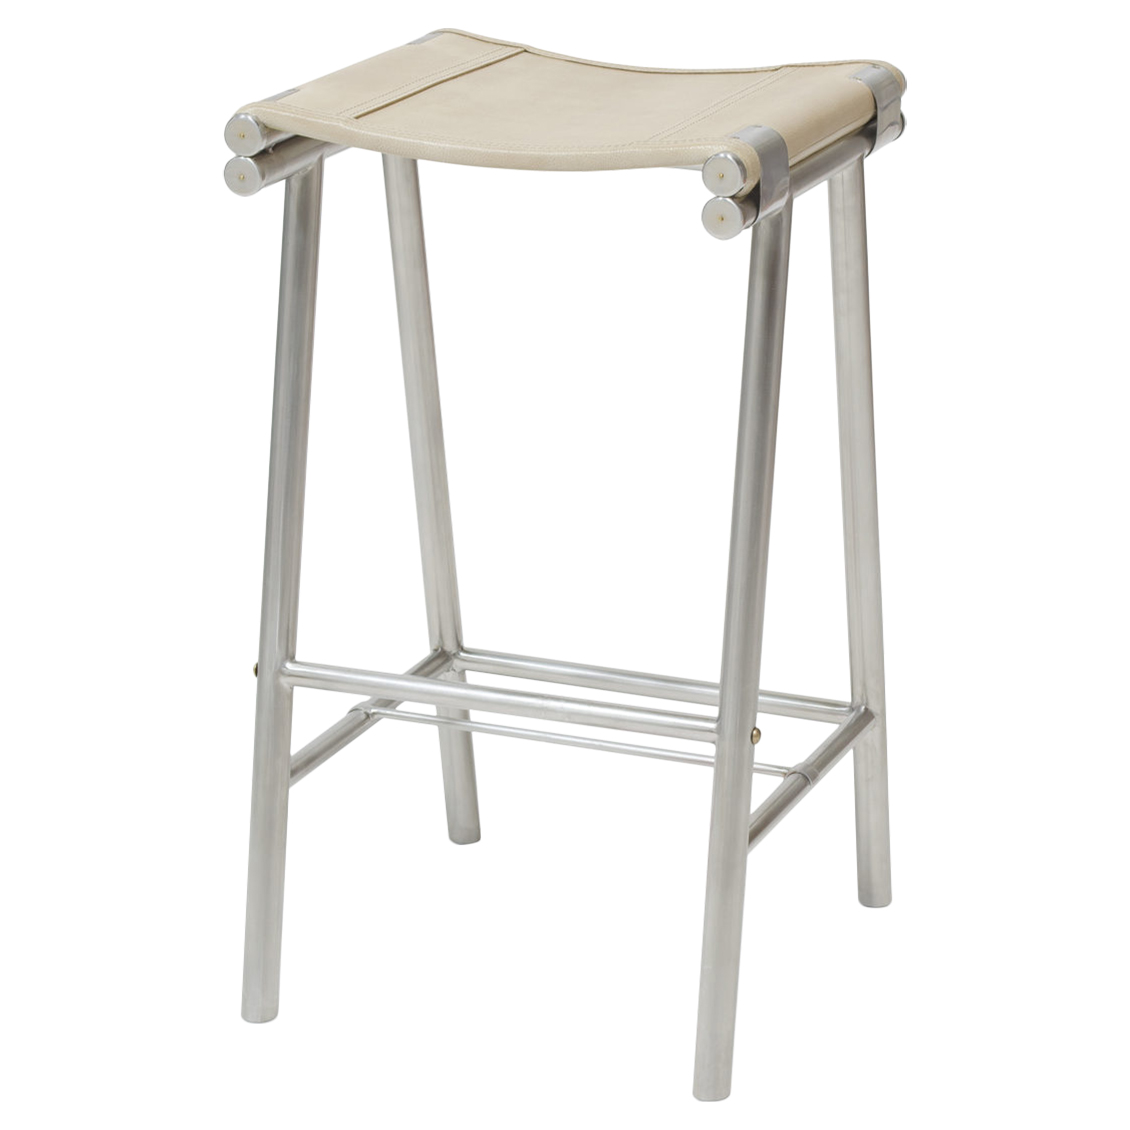 Salome Industrial Stainless Steel Cashew Leather Counter Stool